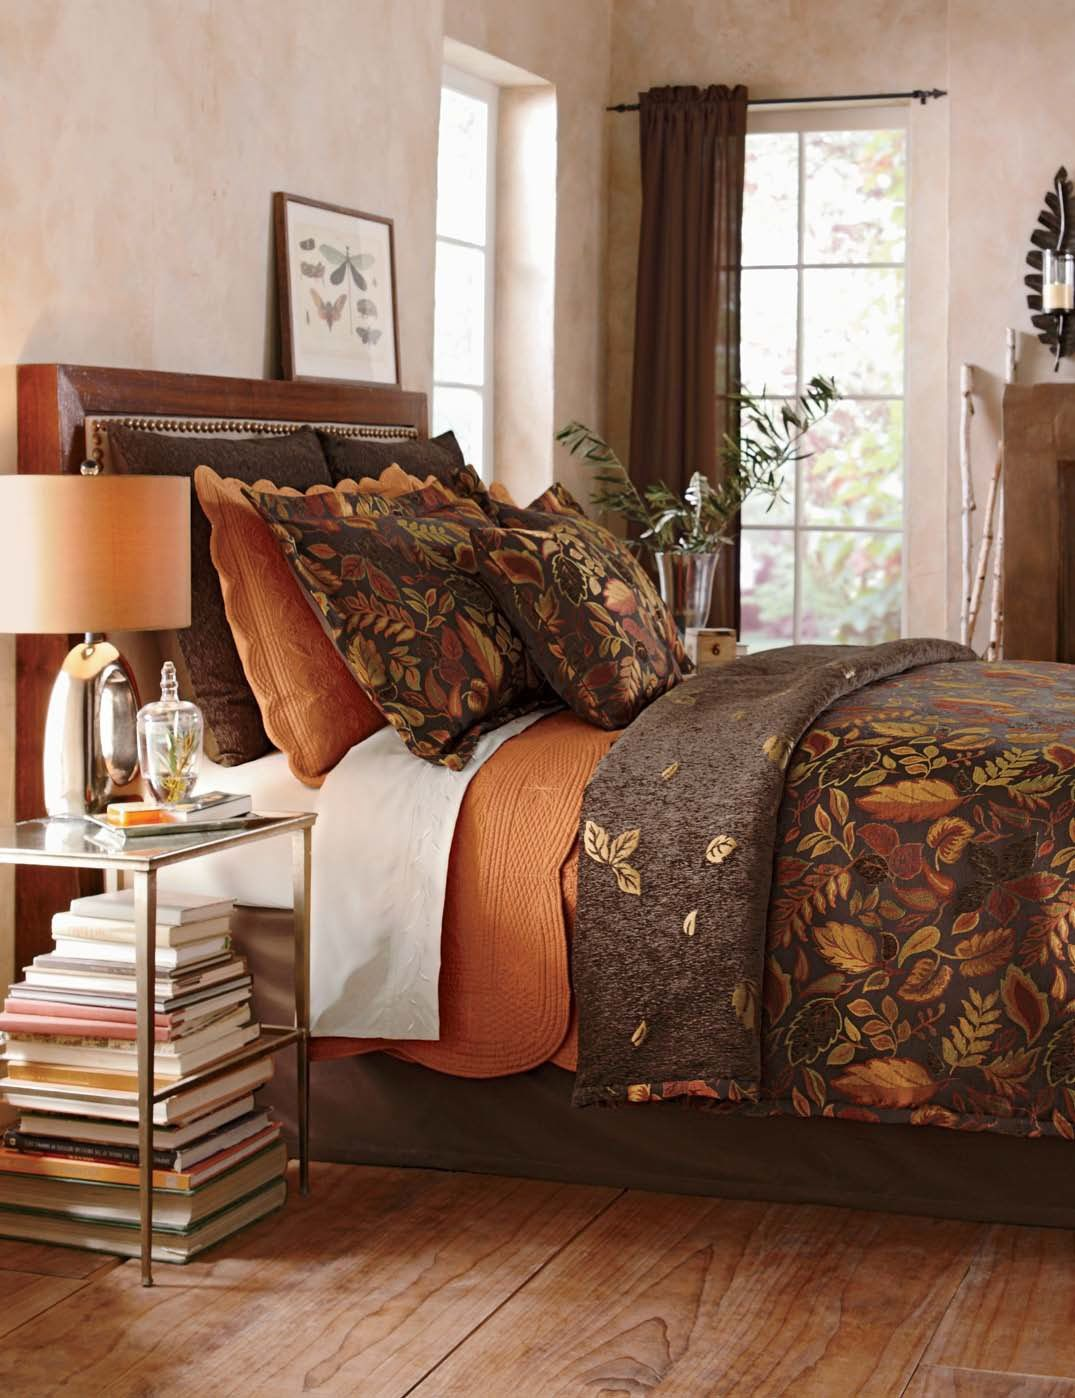 Falling Leaves Coverlet And Accessories Fall Bedroom Home Decor Modern Bedroom